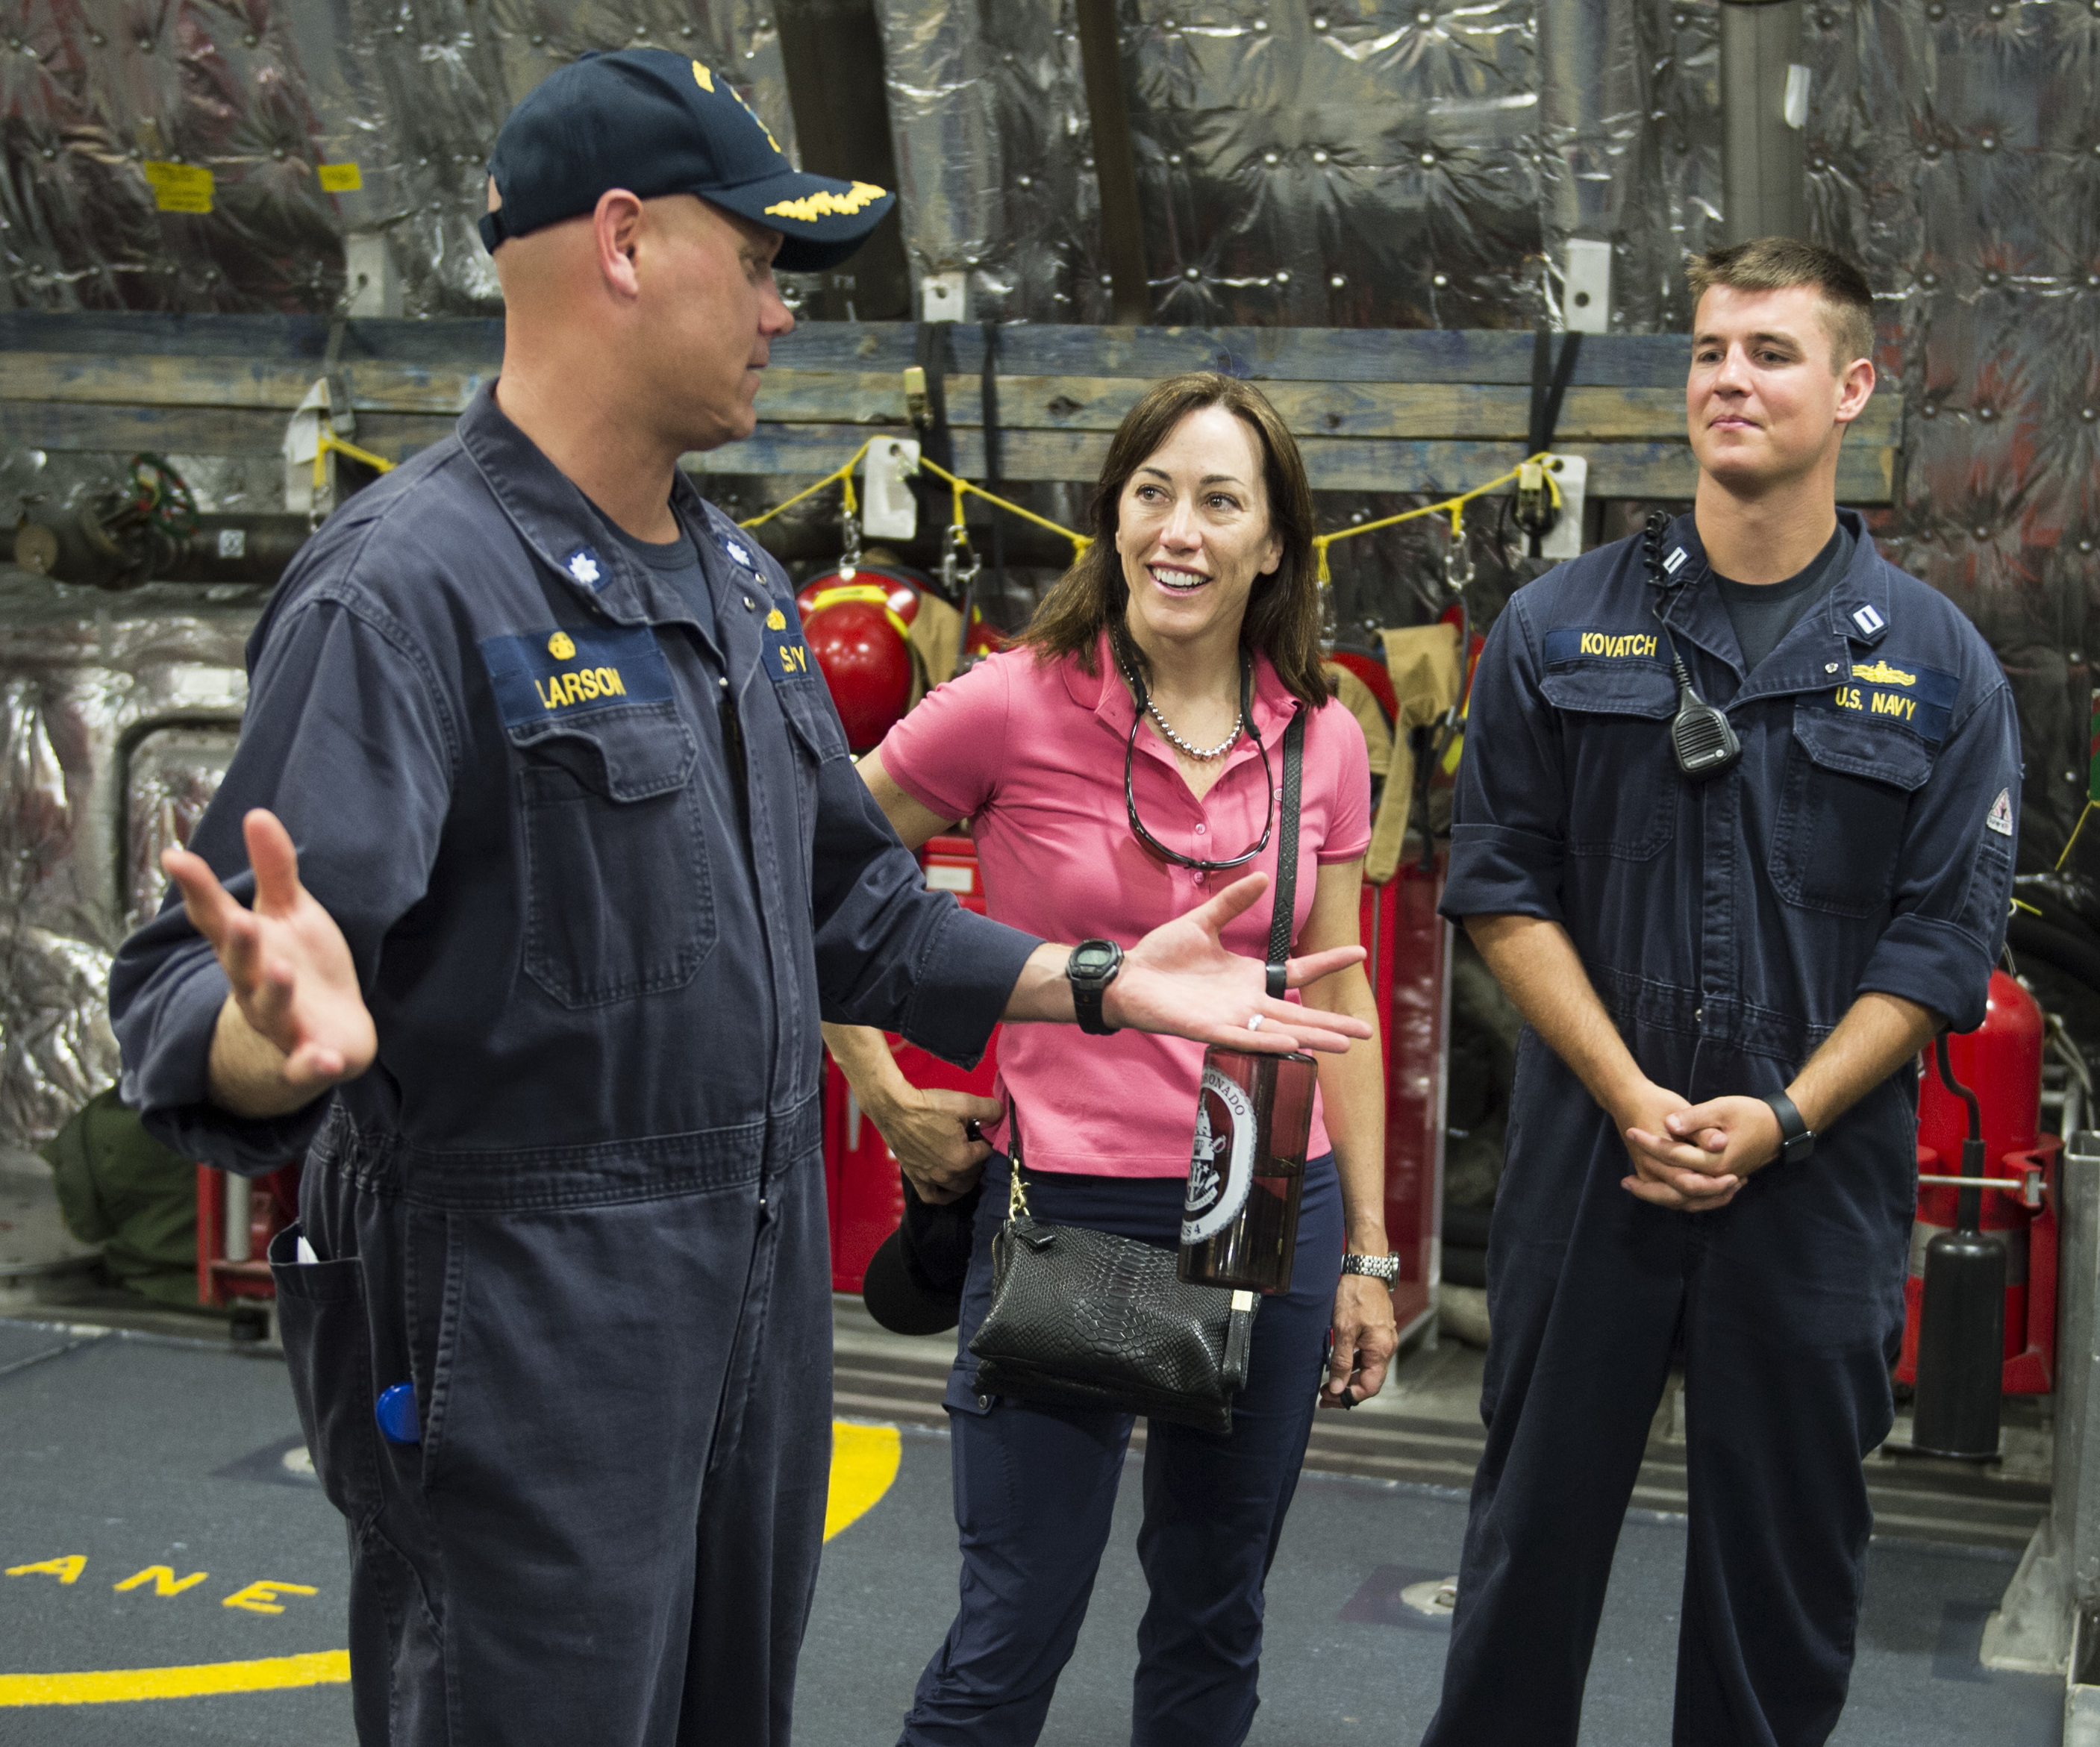 Cmdr. Scott Larson (left), Commanding Officer of littoral combat ship USS Coronado (LCS-4), gives Under Secretary of the Navy Janine A. Davidson a tour of the ship during Rim of the Pacific 2016. US Navy Photo